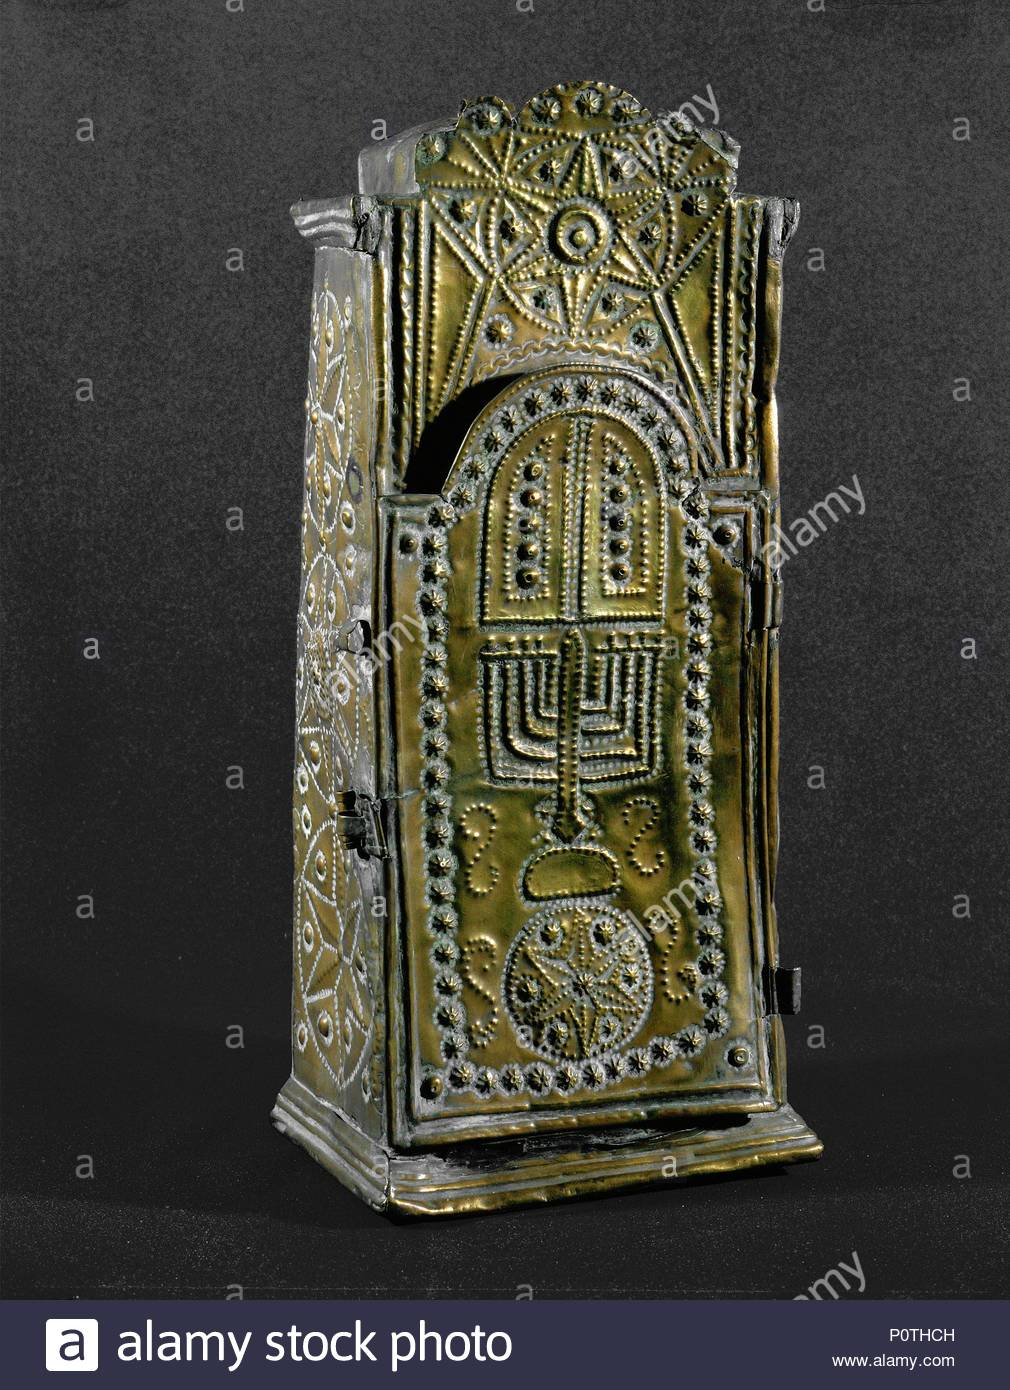 Miniature Ark, or Torah shrine. A menorah and the tablets with the ten commandments appear on the doors. From Russia. Punchwork on sheet brass, 41 x 18 x 14 cm. Location: Israel Museum, Jerusalem, Israel. - Stock Image